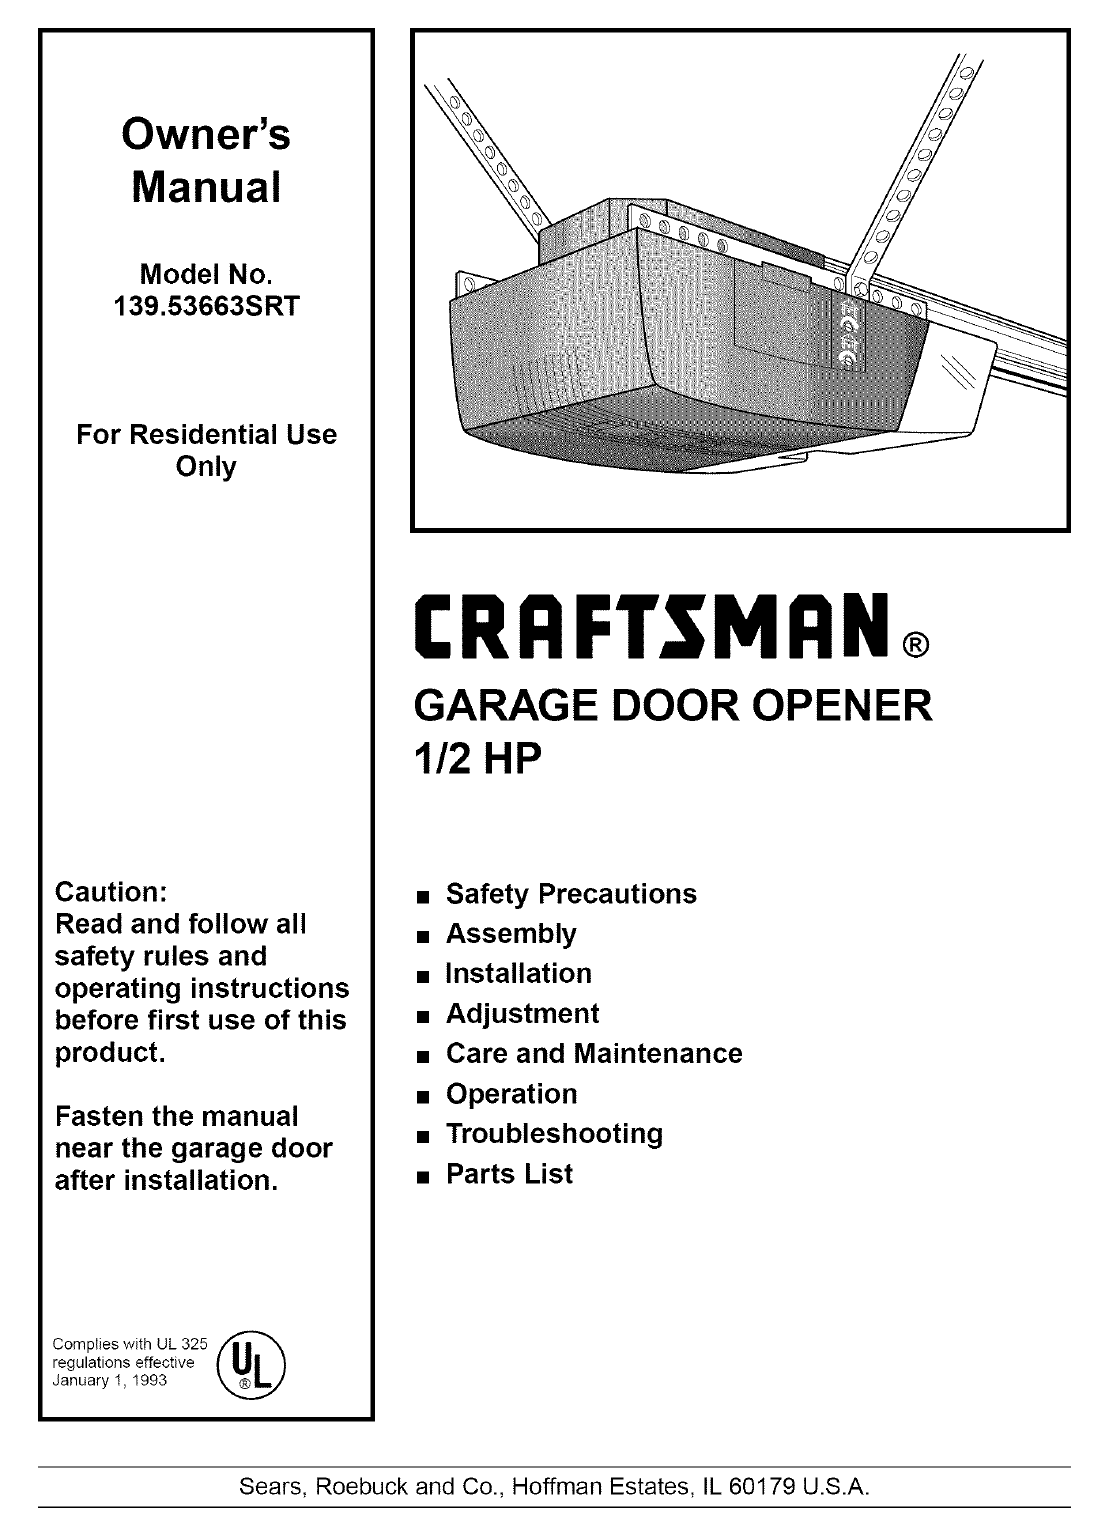 Craftsman 1 2 Hp Garage Door Opener Parts List